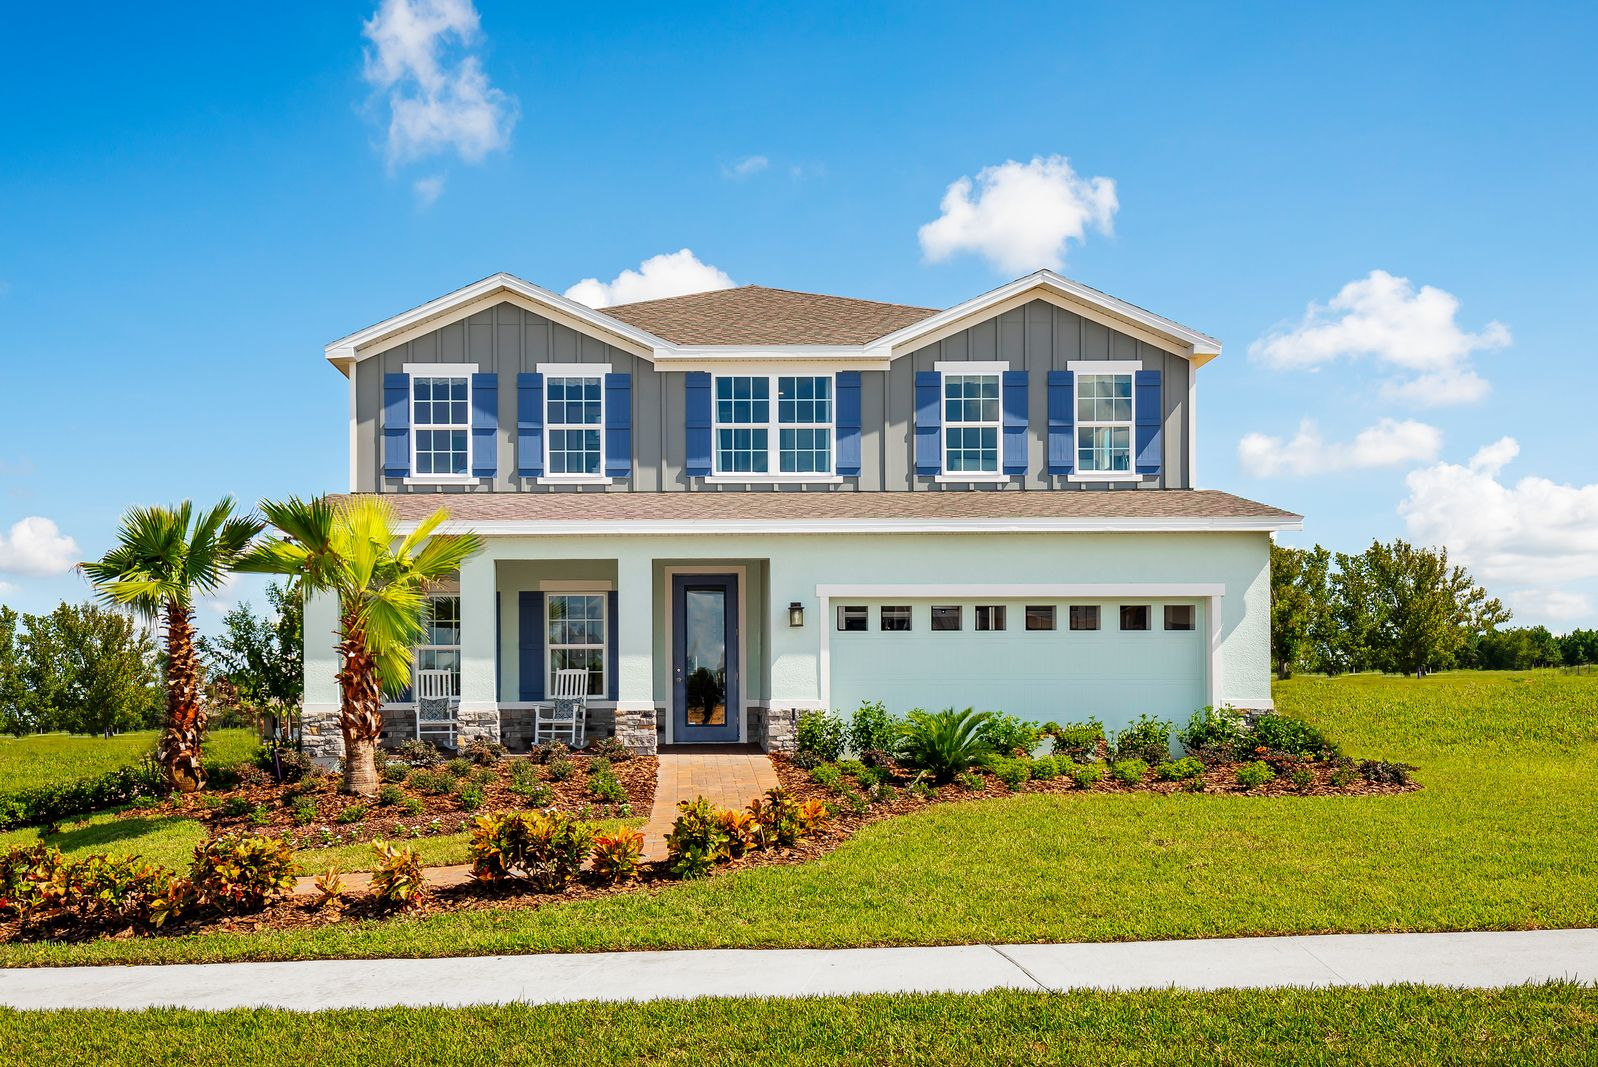 Welcome to Creekside in Kissimmee, FL:If you're looking for a spacious home in a gated, resort-style community with a beach-entry pool, playground, and NO CDD Fees, come visitCreekside's New Construction homes with NEW Floorplans today!